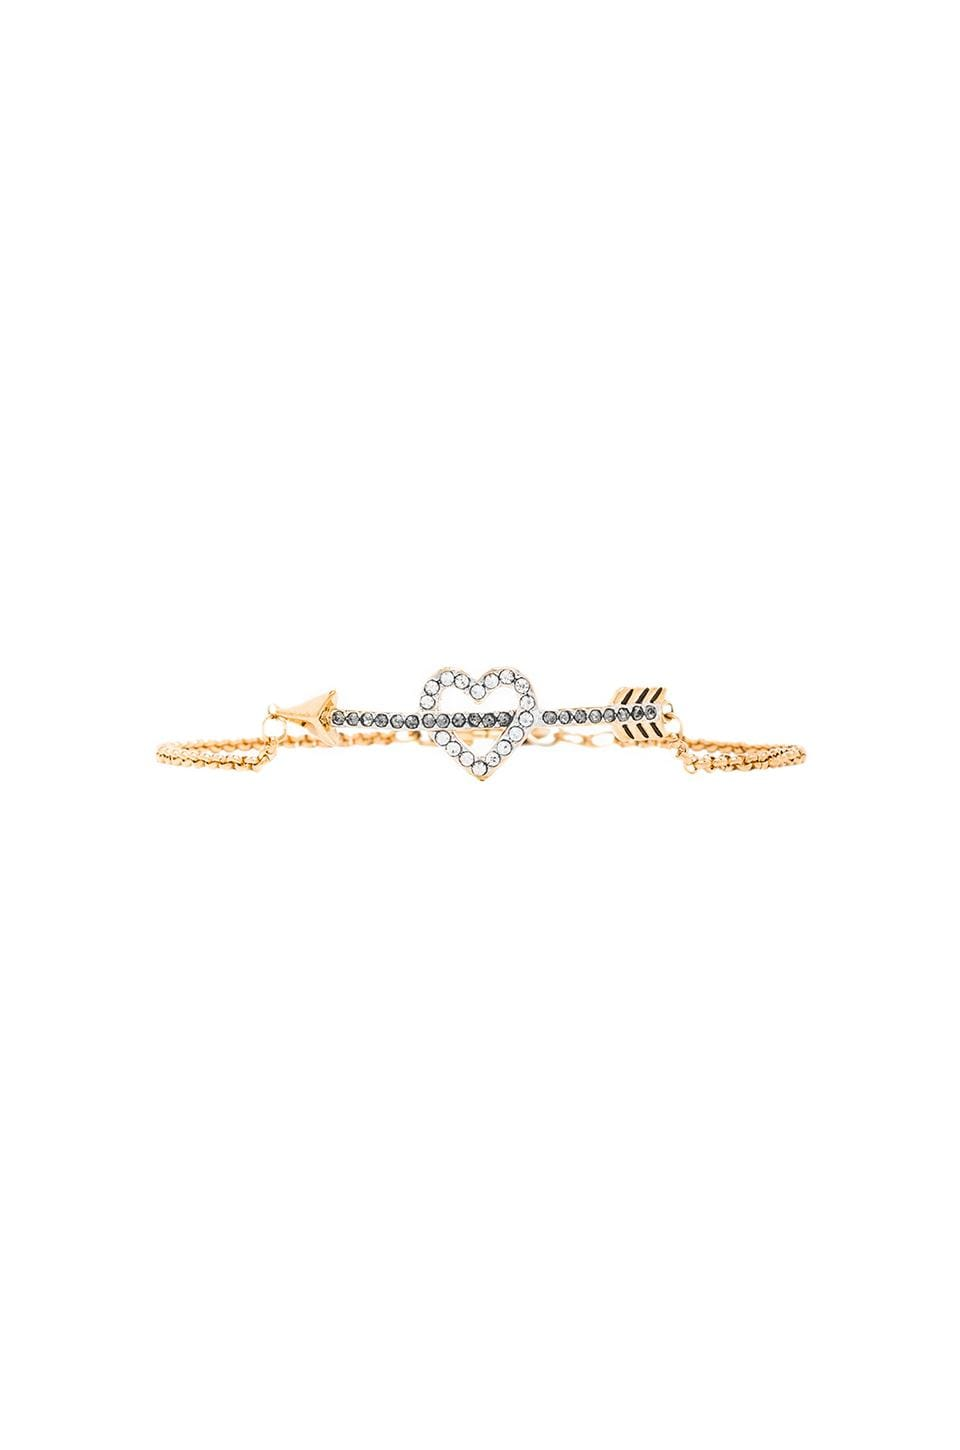 Juicy Couture Heart & Arrow Wish Bracelet in Gold